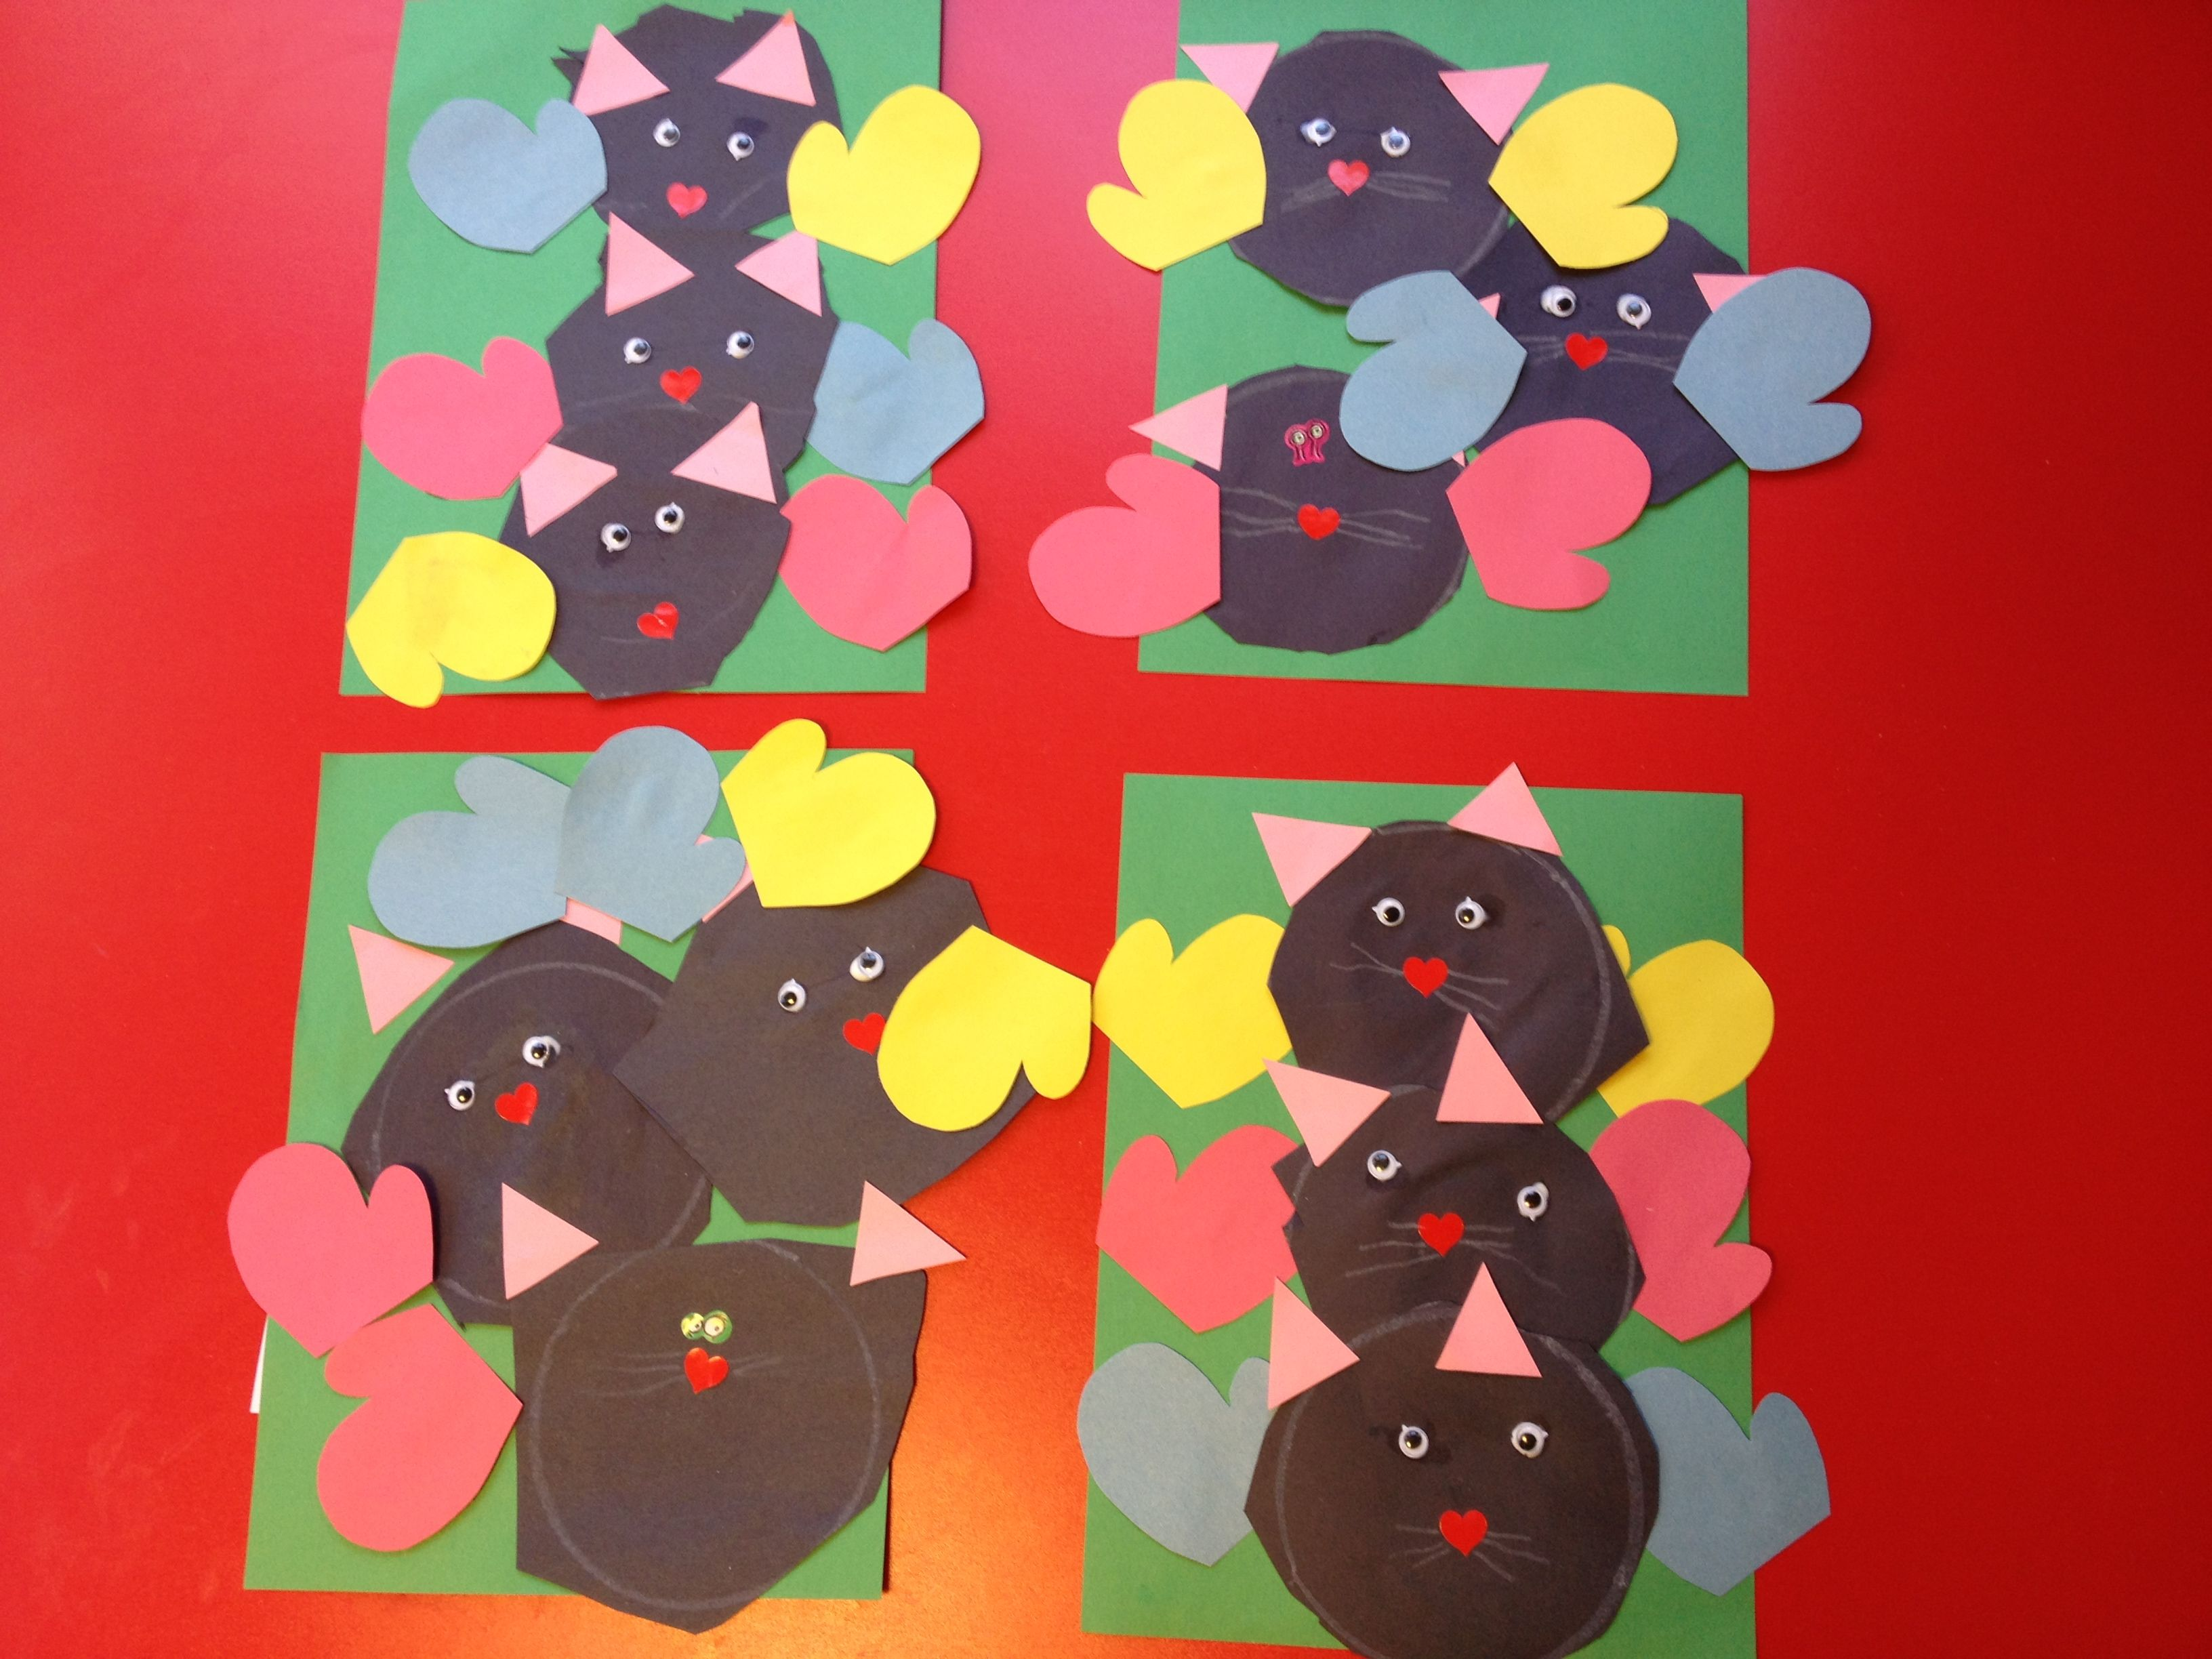 Three Little Kittens Child Cuts Out 3 Circles Add Eyes Nose And Ears Match Colored Mittens